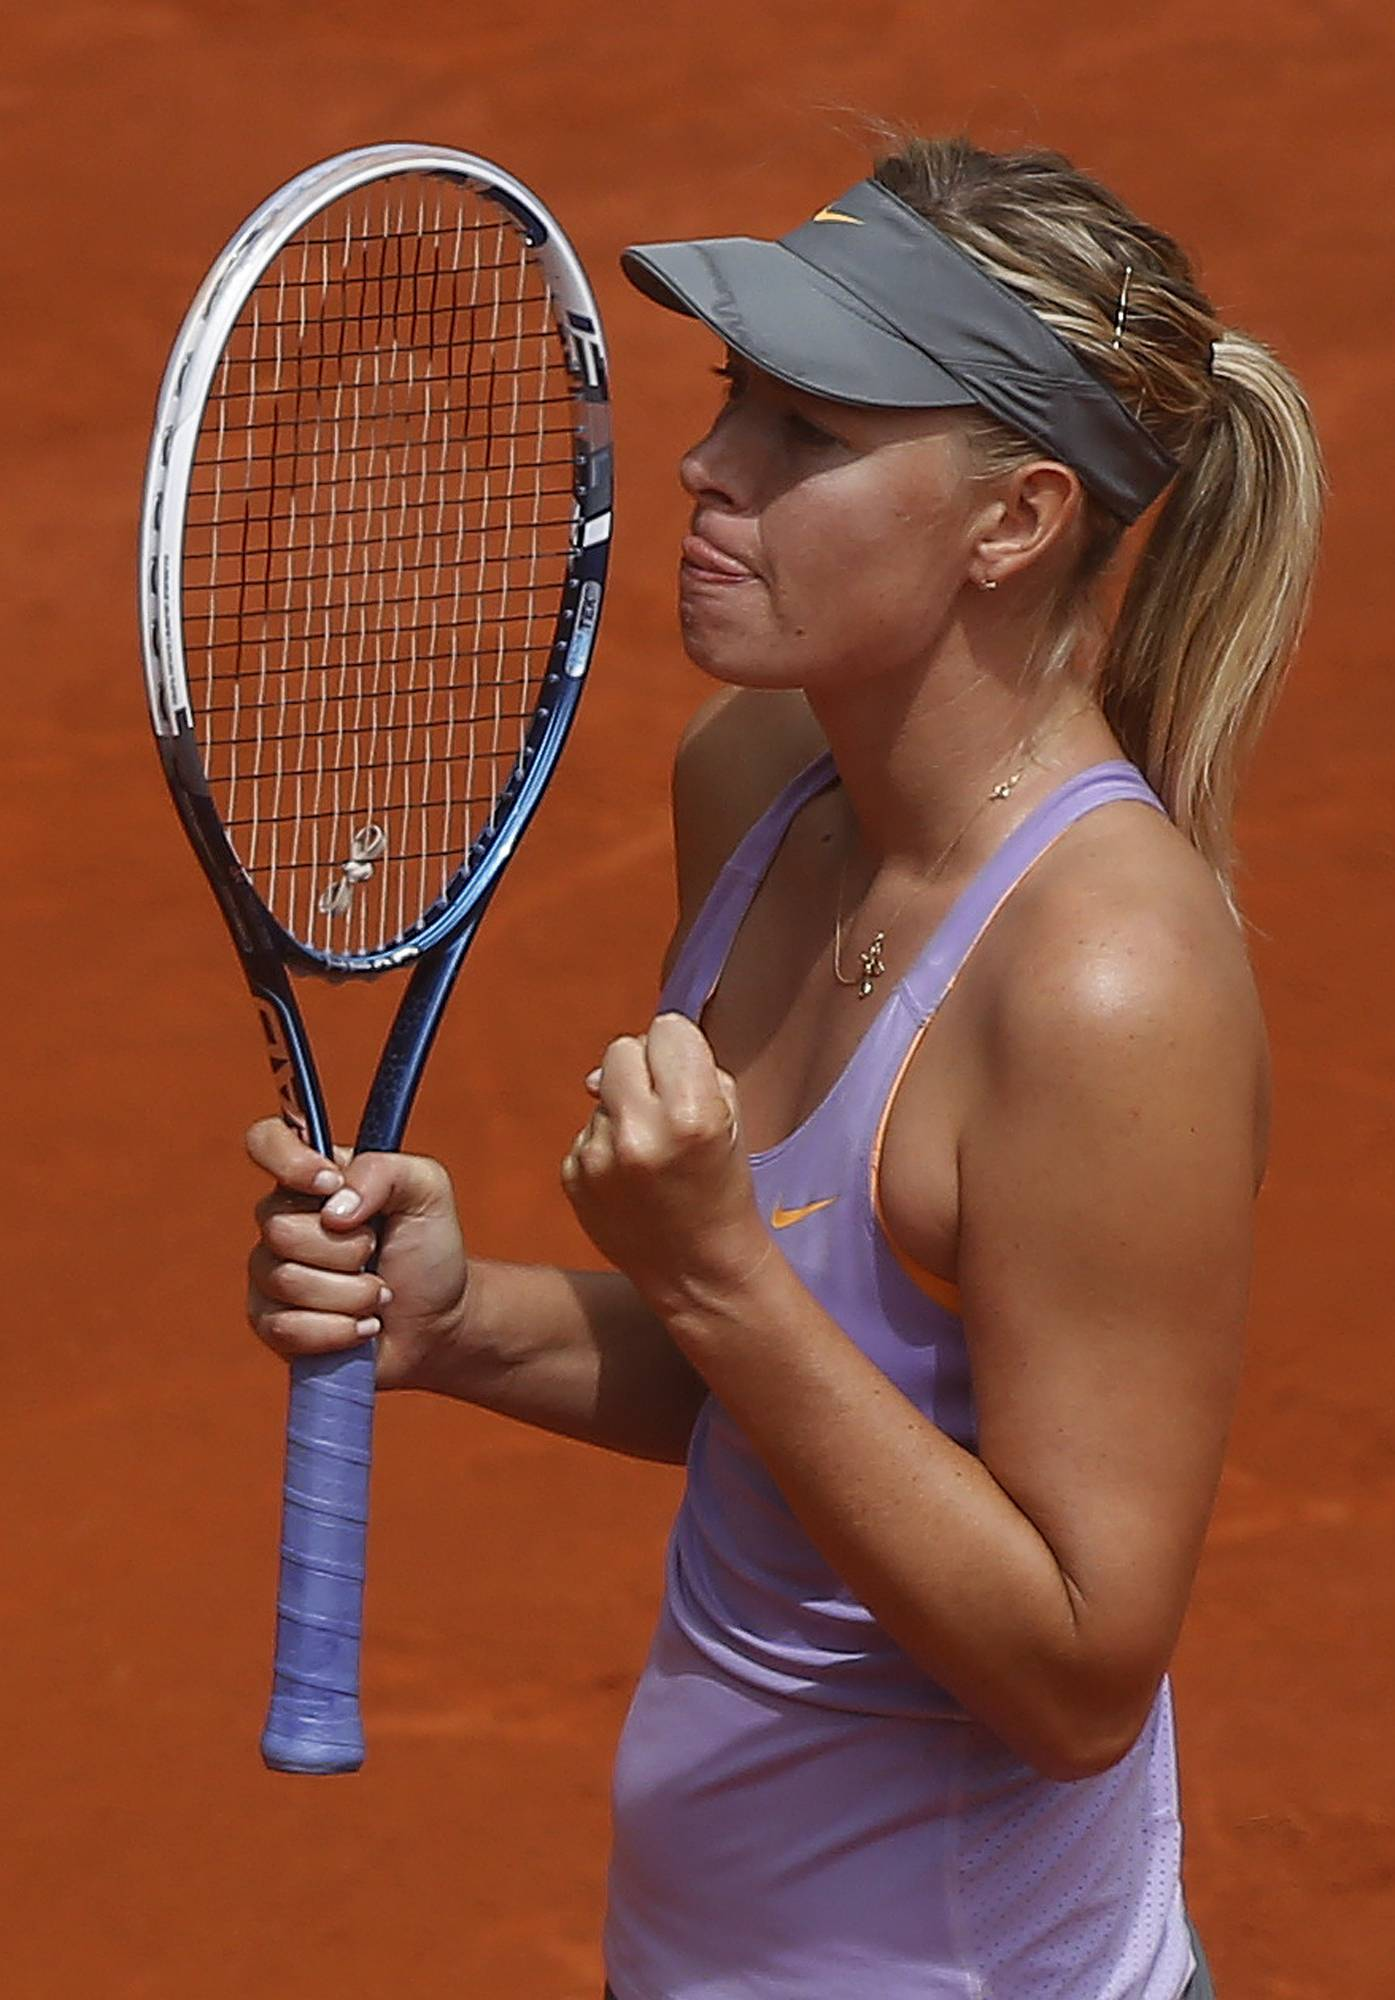 Maria Sharapova from Russia celebrates her victory against Christina McHale from U.S. during a Madrid Open tennis tournament match in Madrid, Spain, Tuesday May 6, 2014.